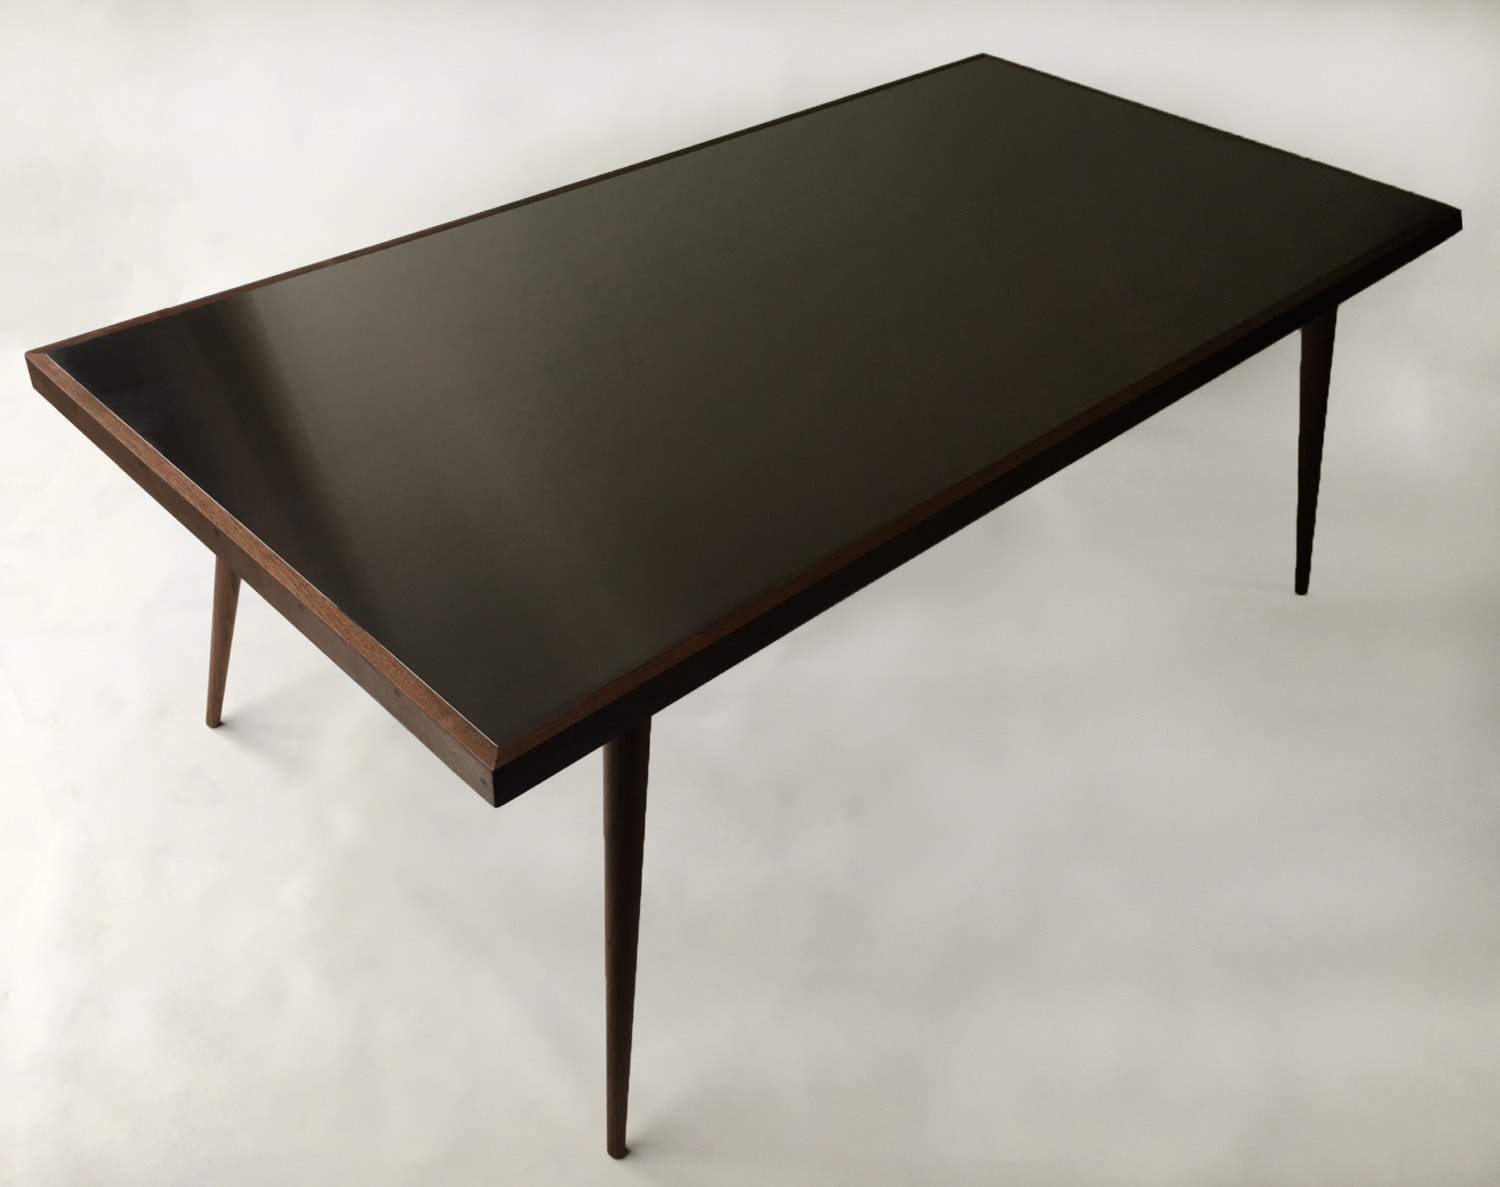 red entry table. Contemporary Stainless Steel + Walnut Table Red Entry